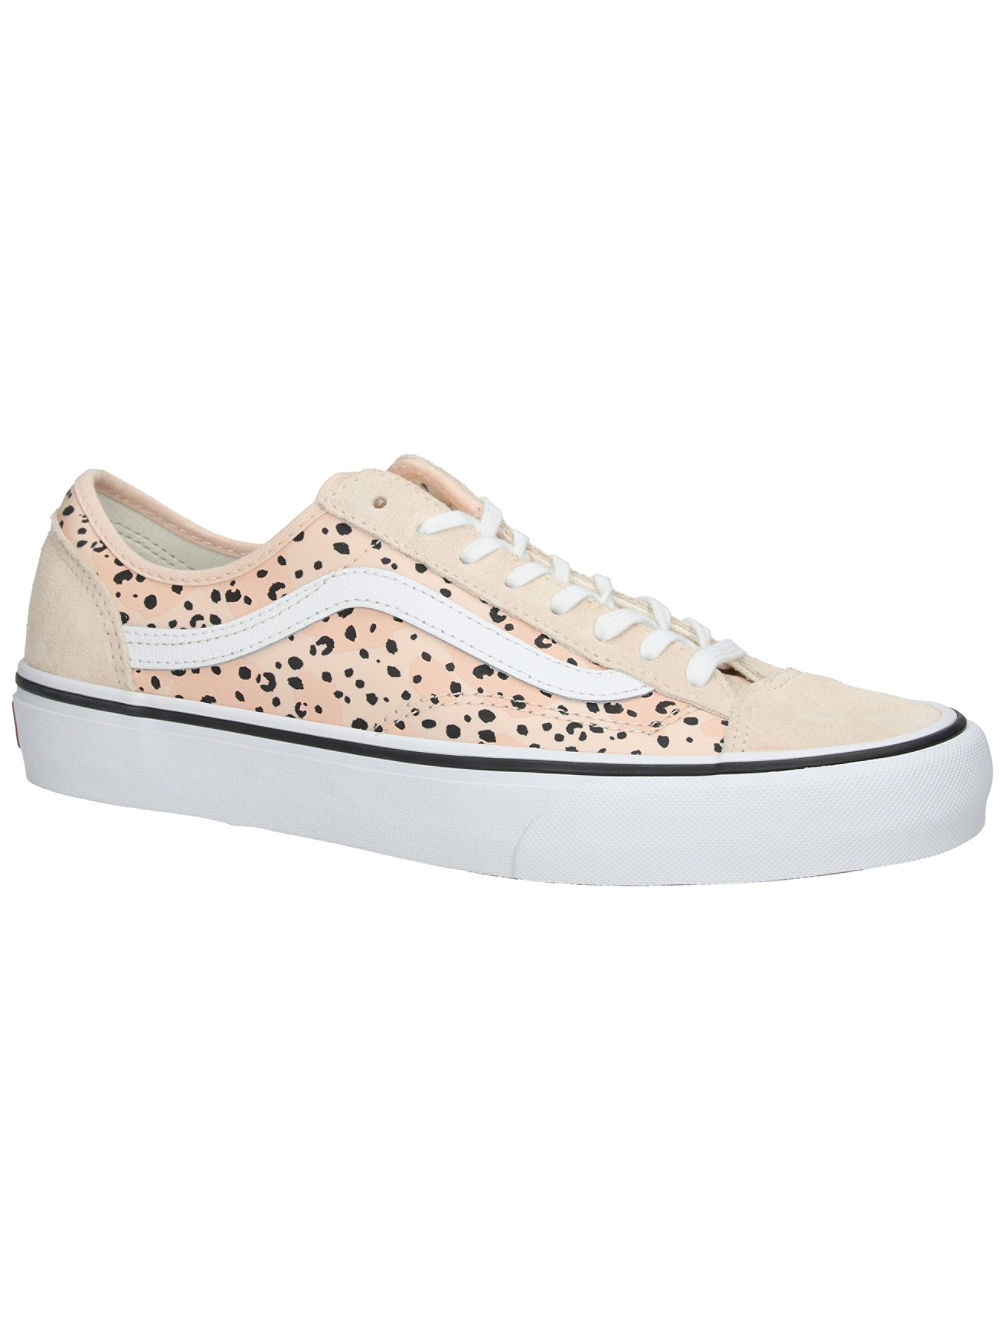 Style 36 Decon SF Leila Hurst Sneakers